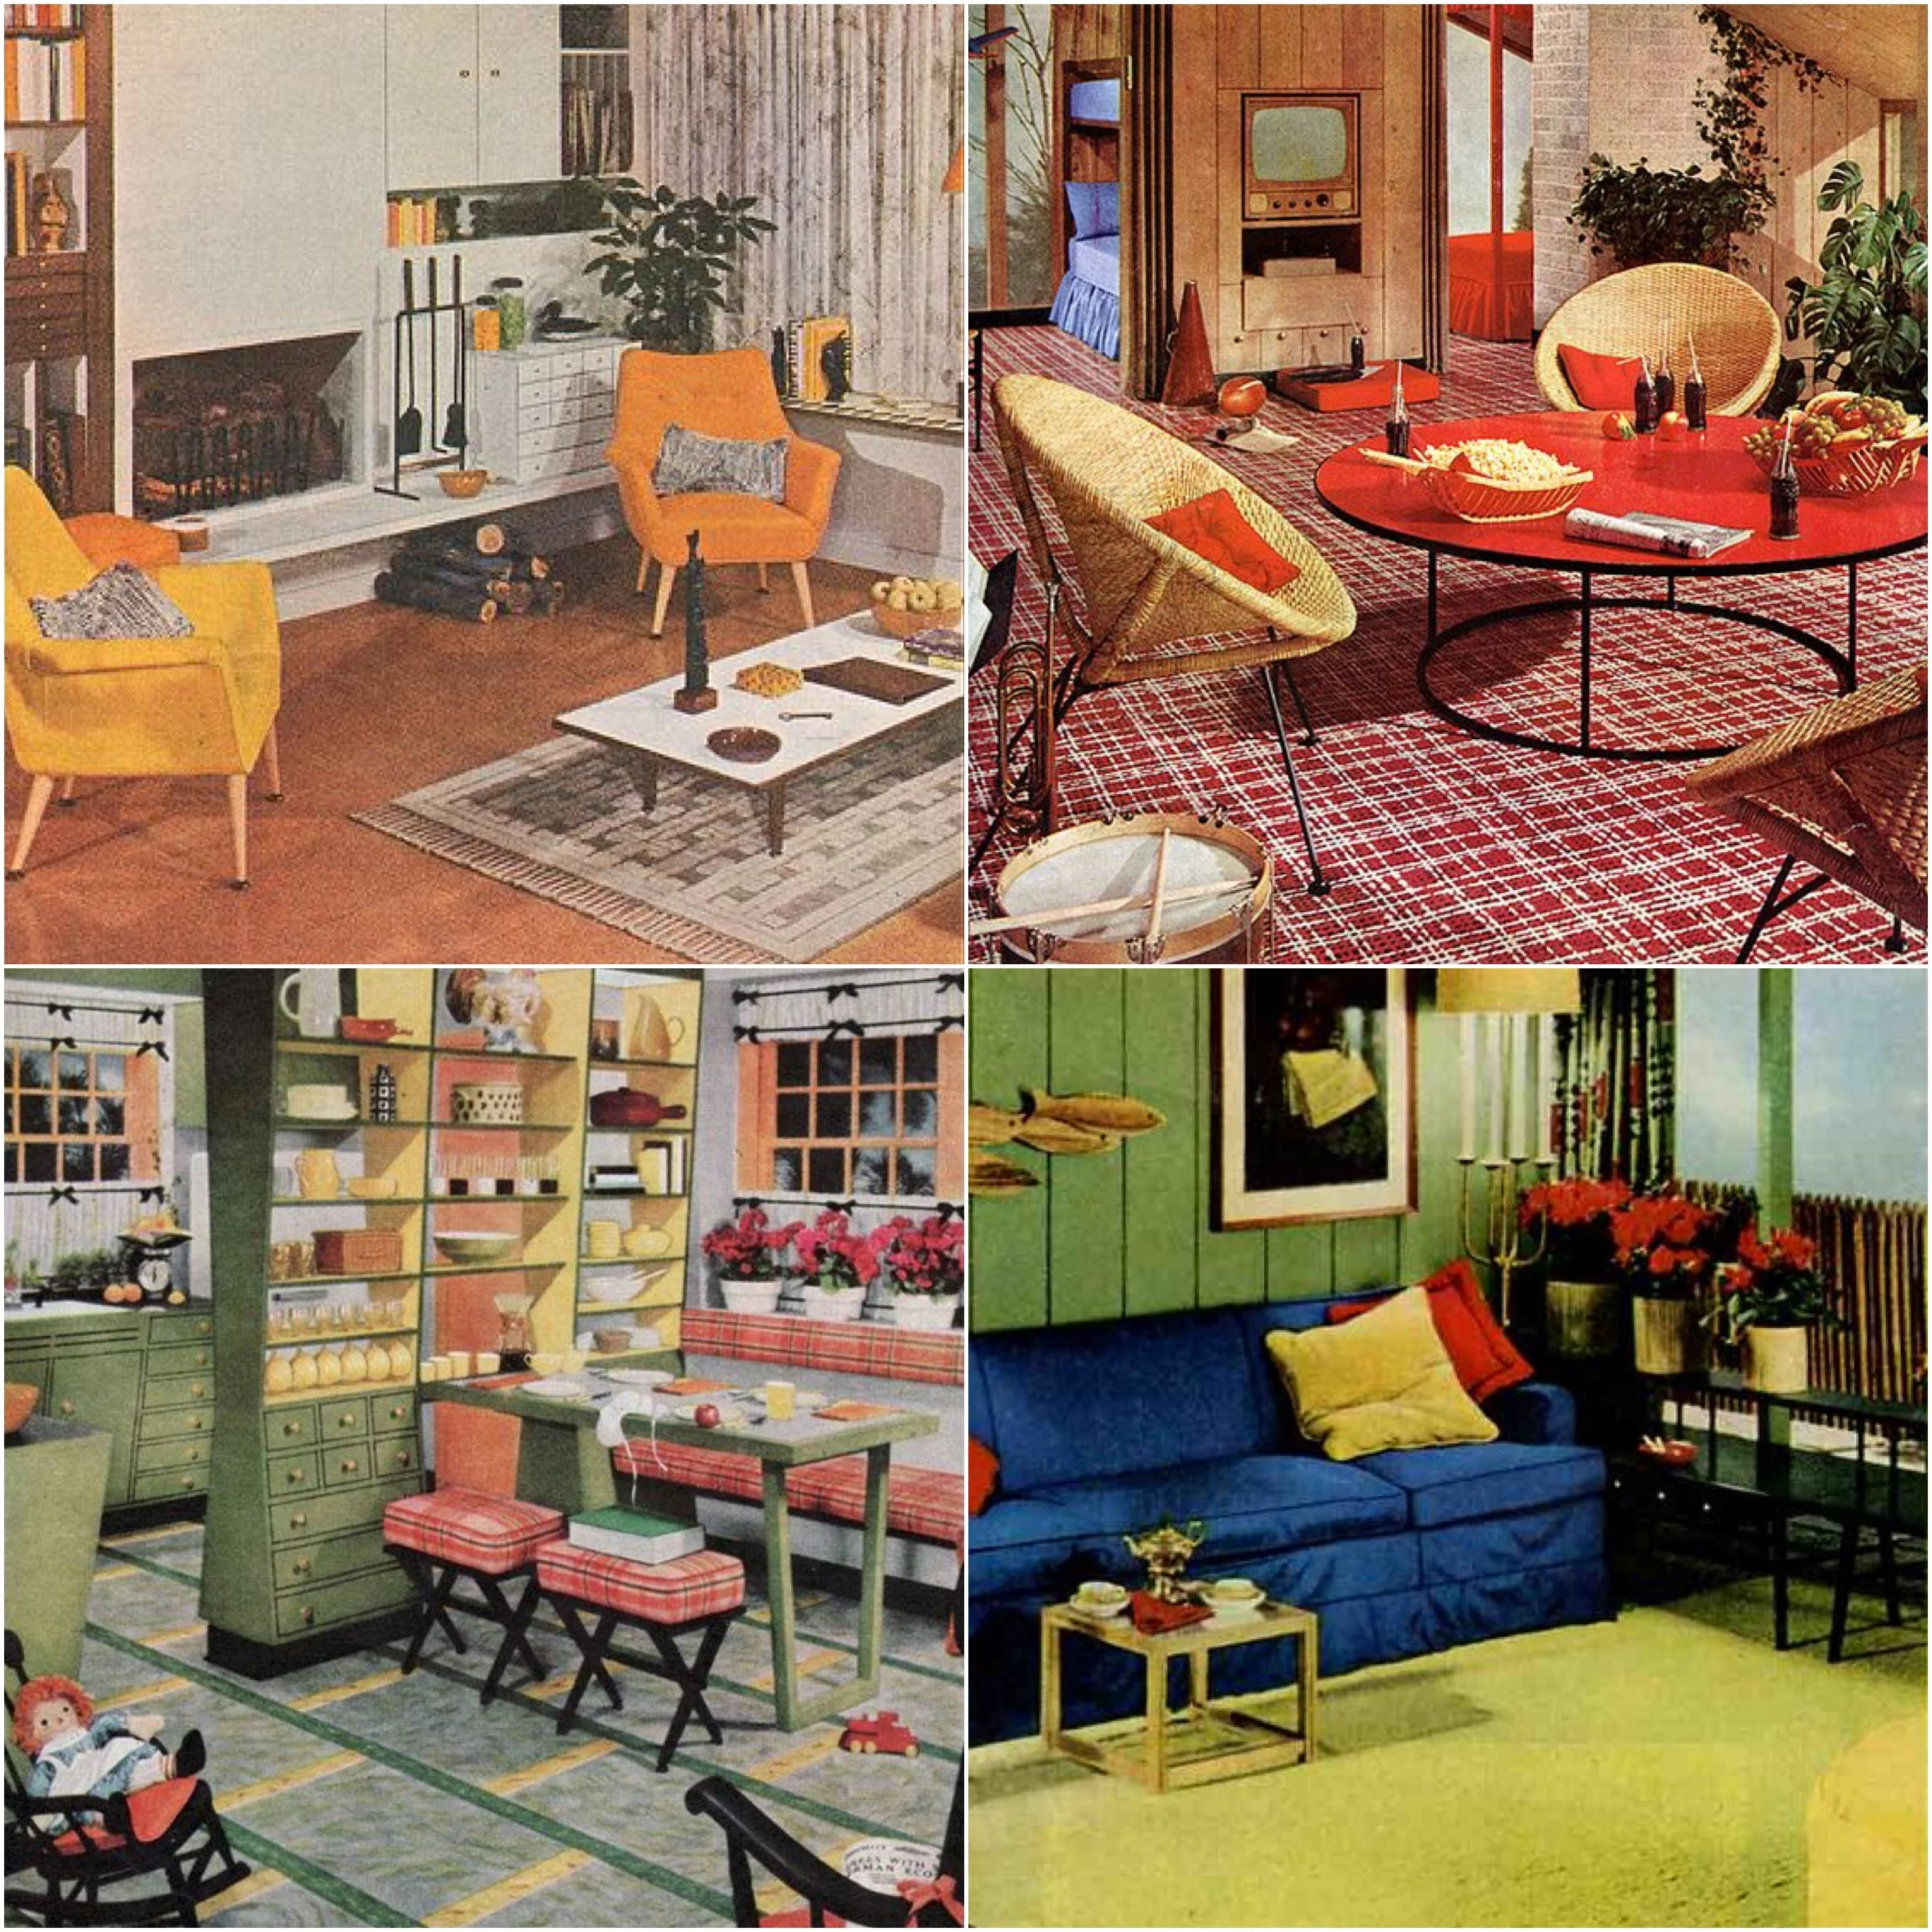 retro chrome chairs wedding reception chair covers and sashes 7 reasons why 1950's homes rocked